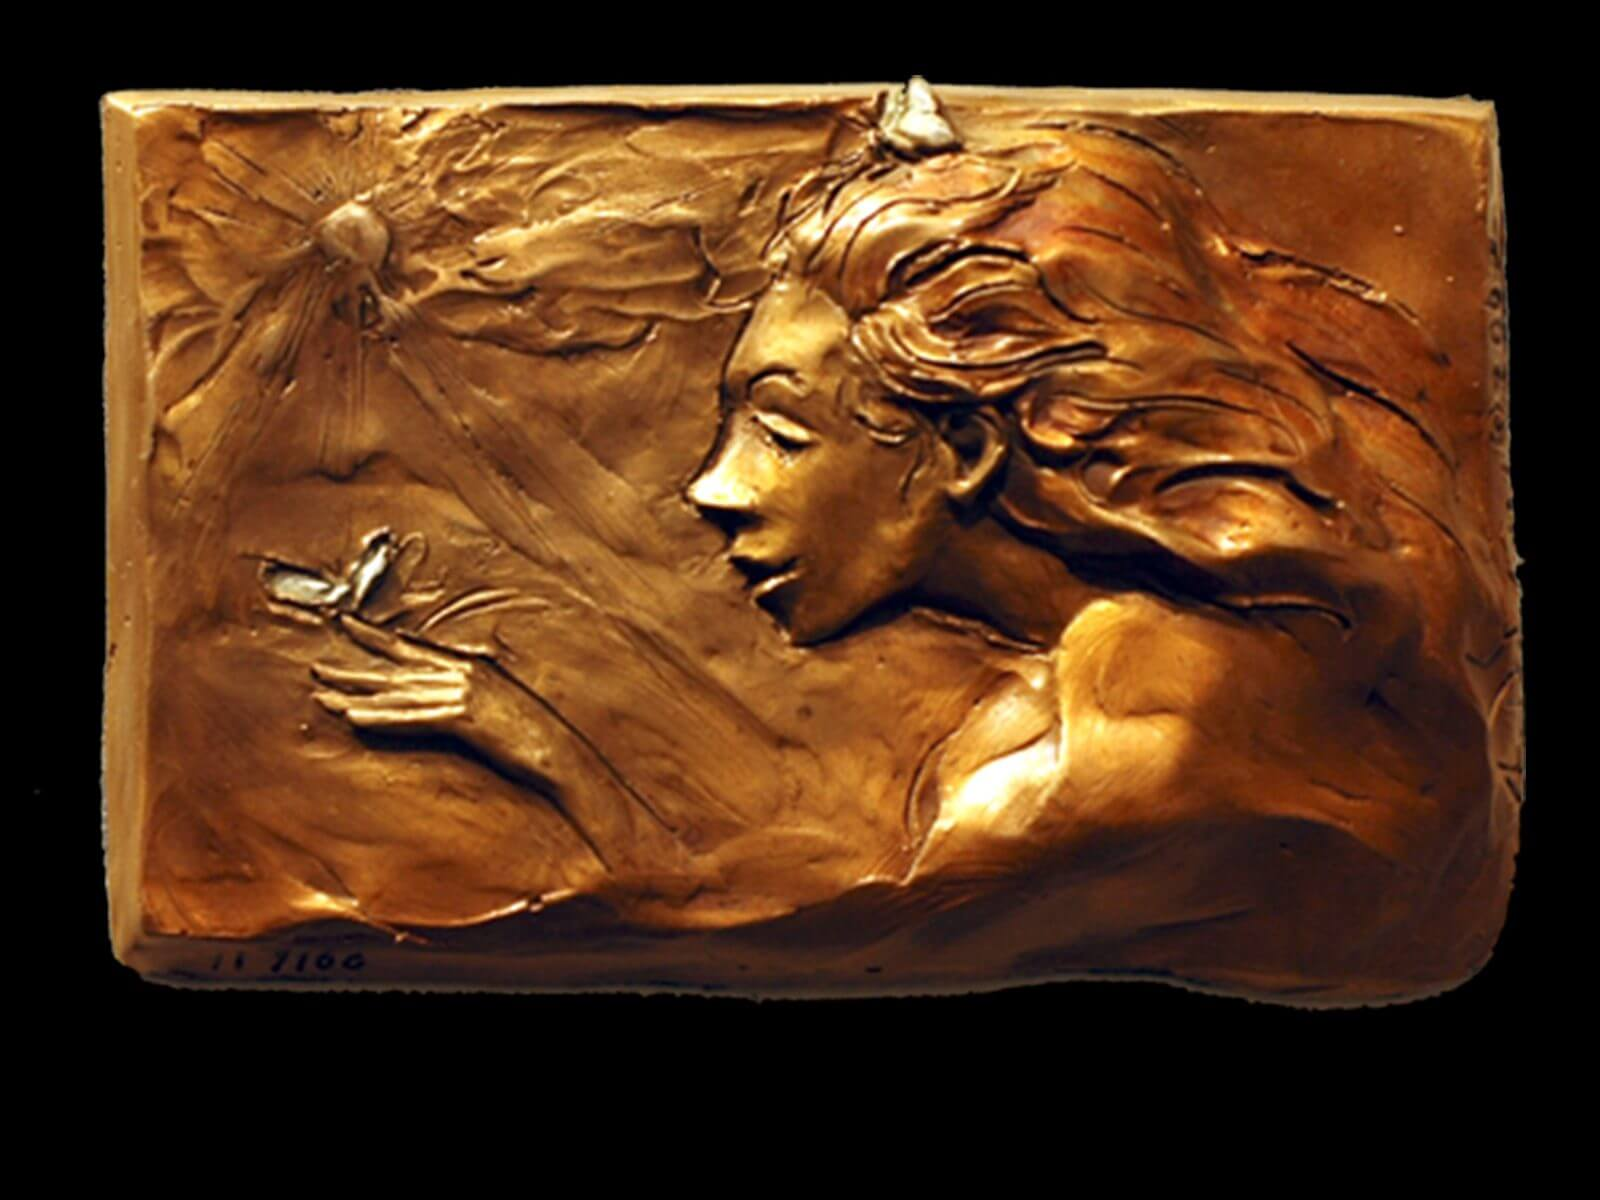 Papillion a bronze figurative relief wall sculpture by Andrew DeVries